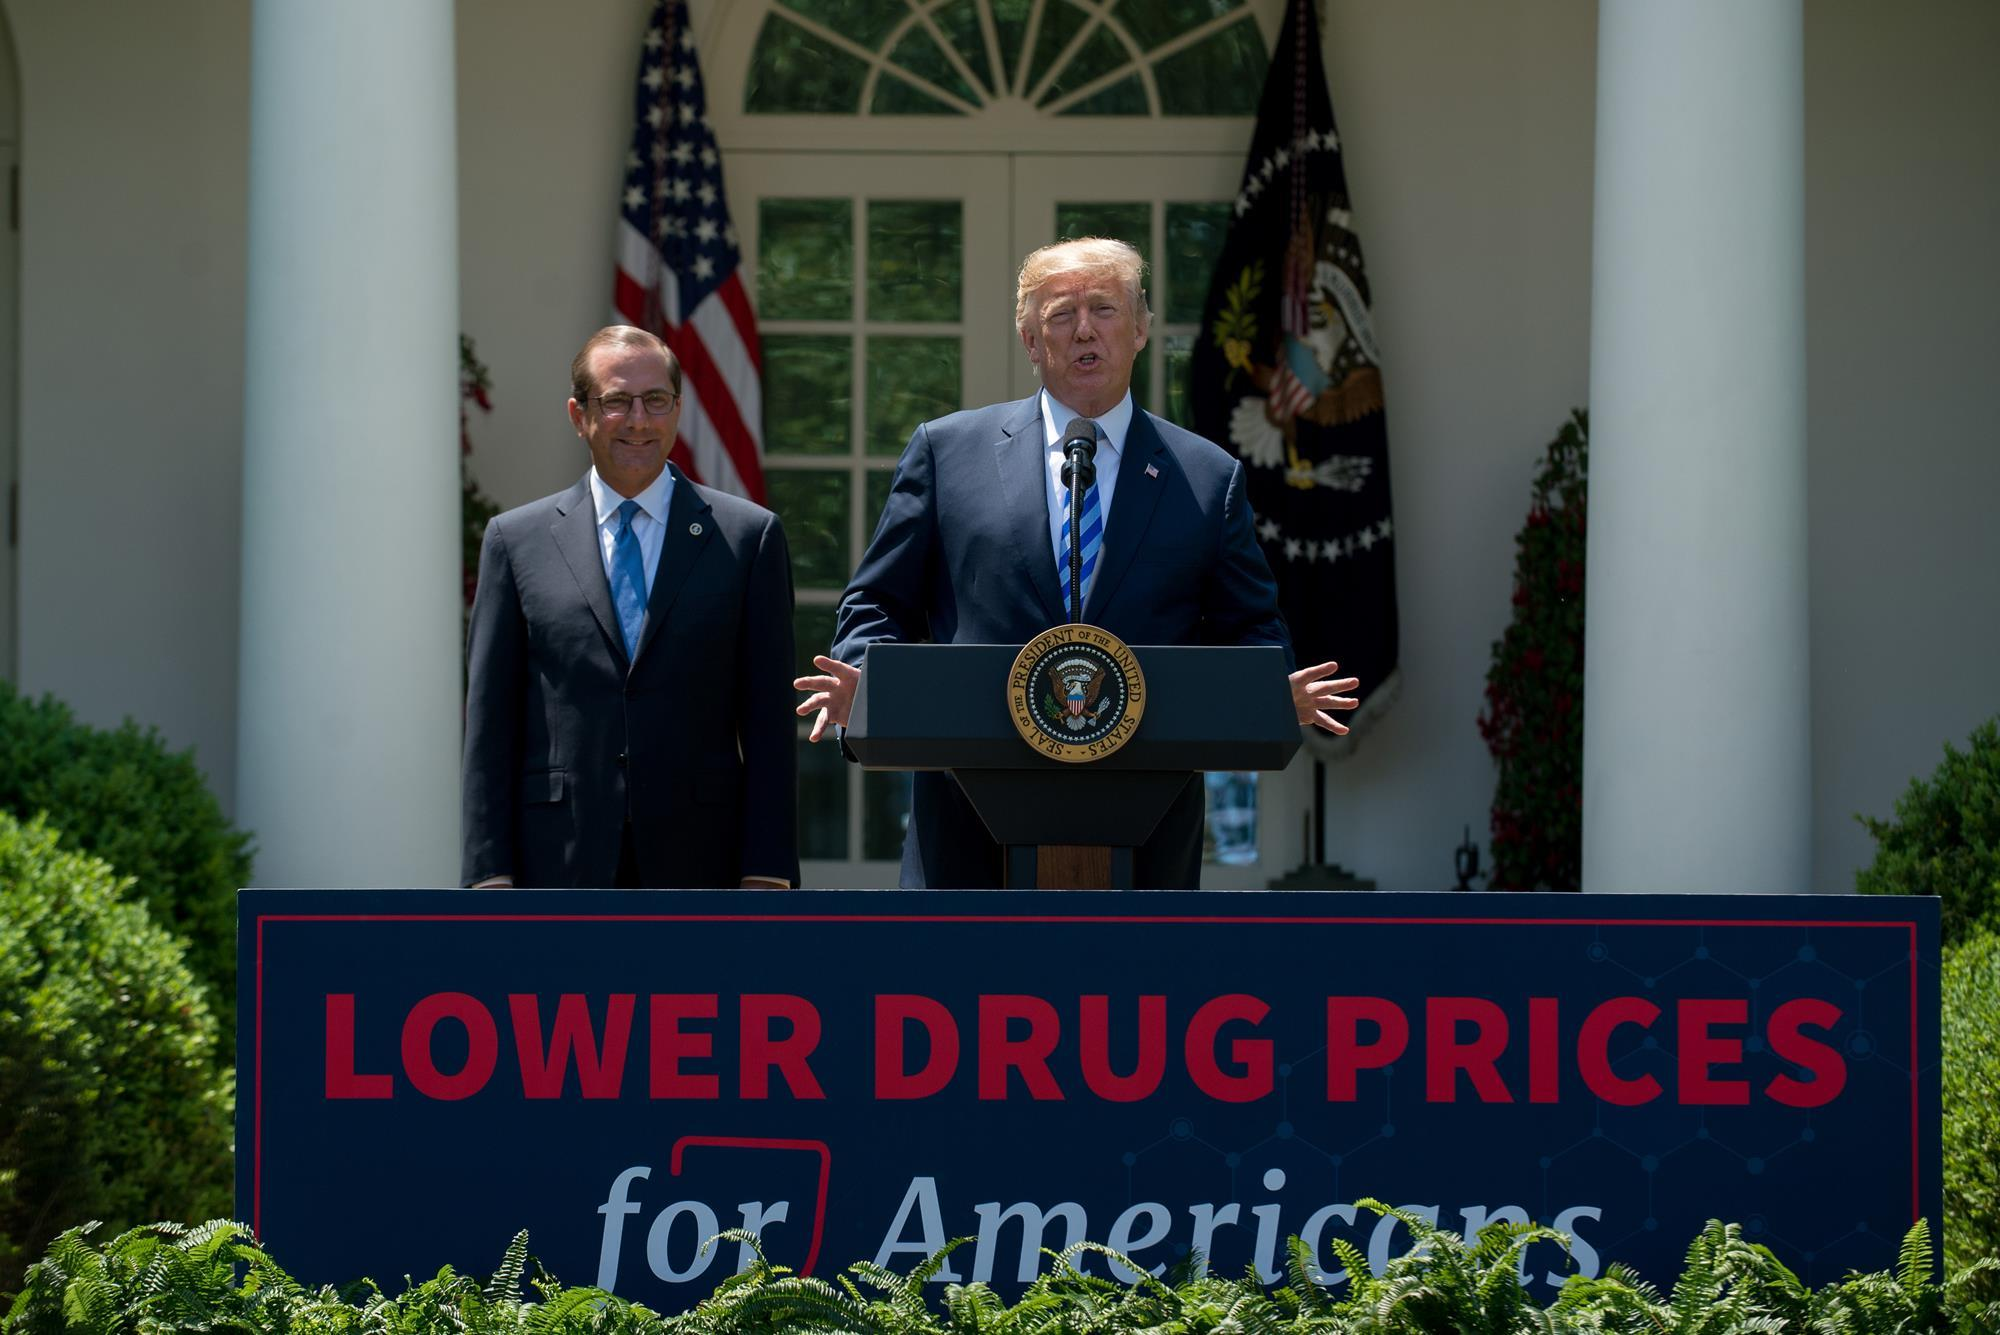 Trump lays out plan to slash drug costs business chemistry world malvernweather Choice Image